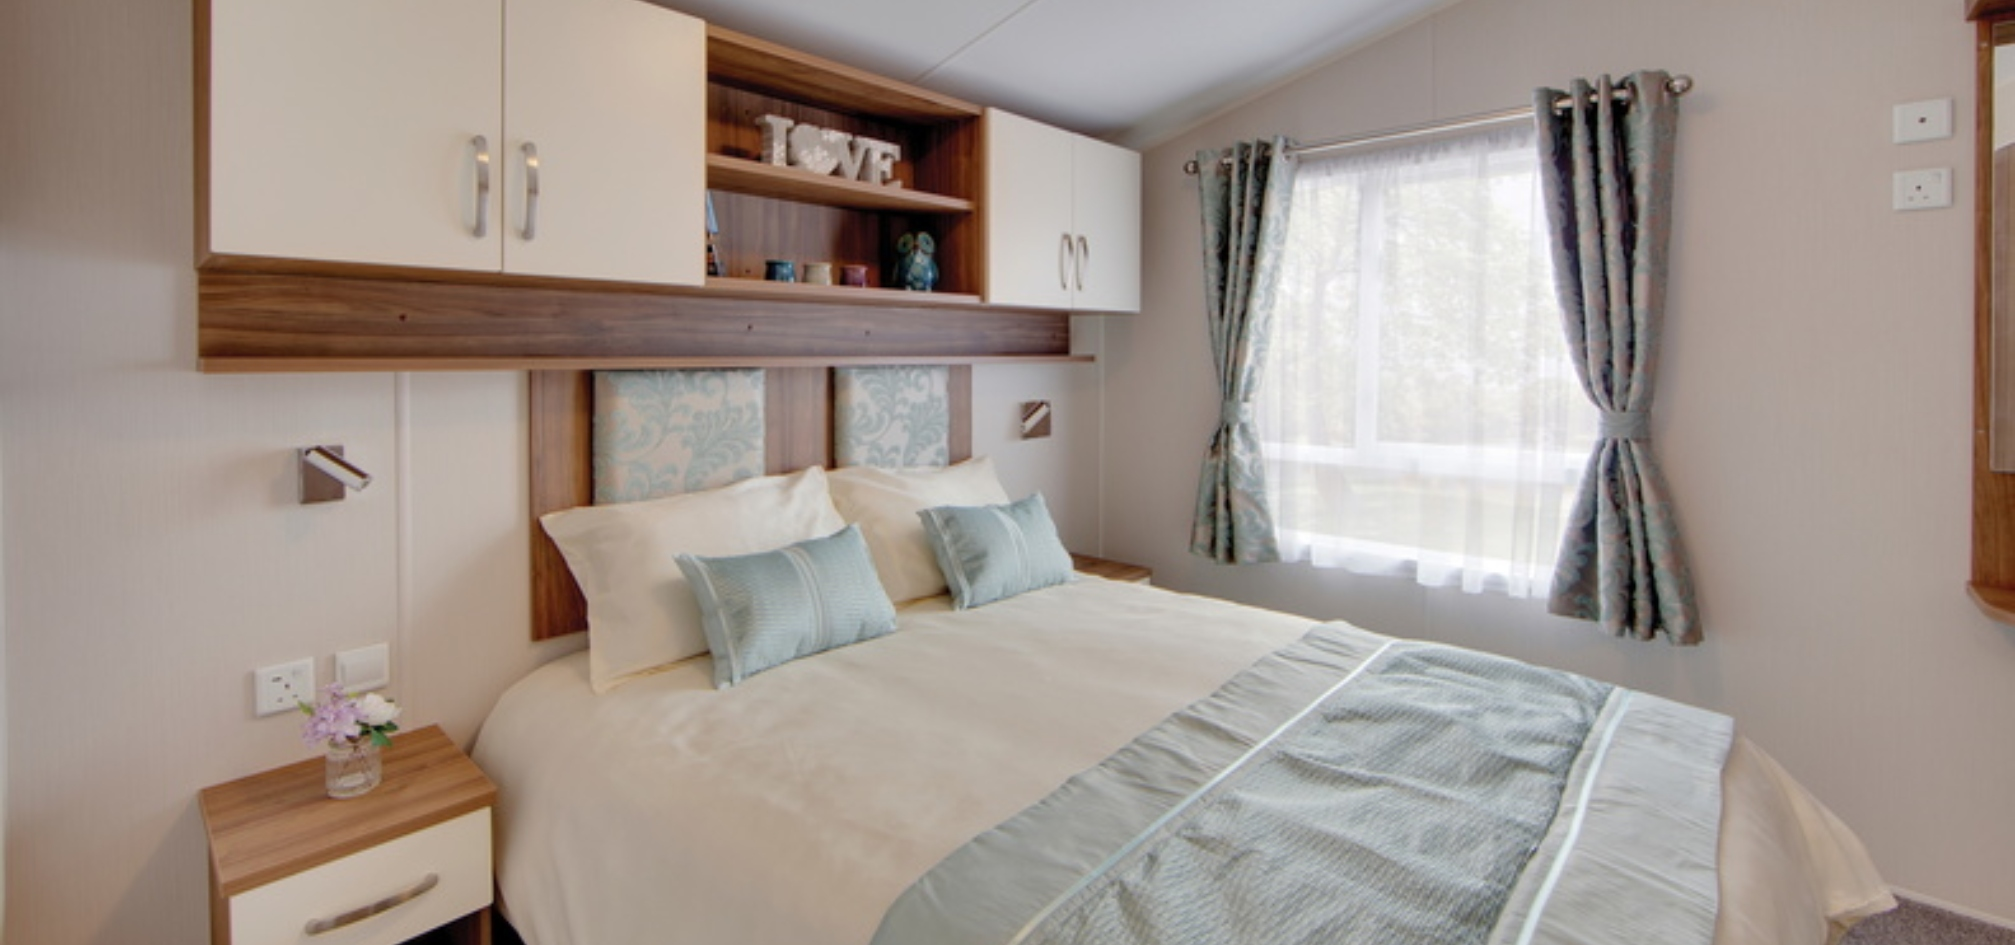 bedroom with a double bed perpendicular to a window with shelving above the bed